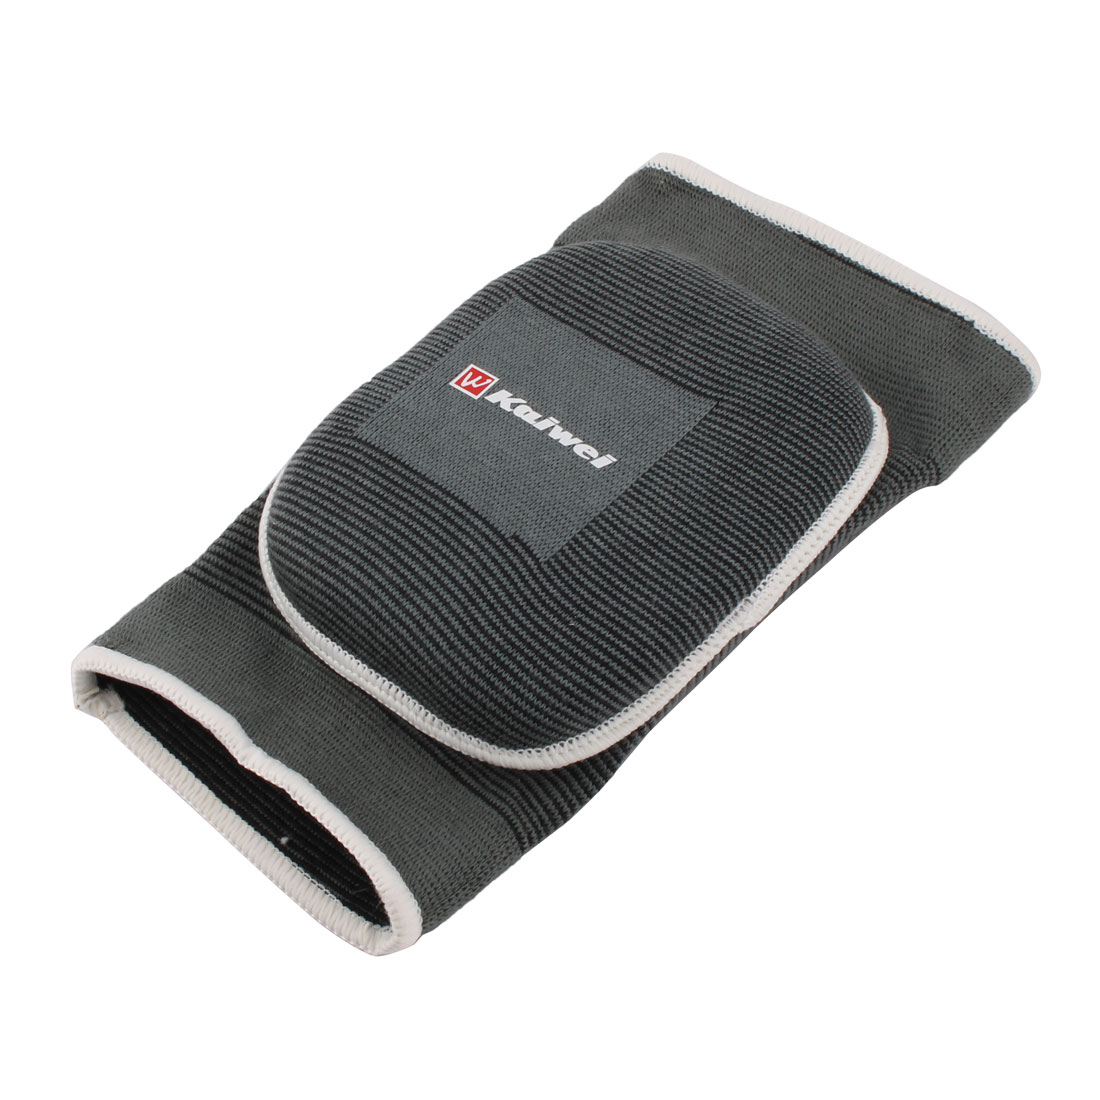 Cotton Blends Knee Sports Elastic Support Protector Pad Gray Black S 9.5 Inch Long